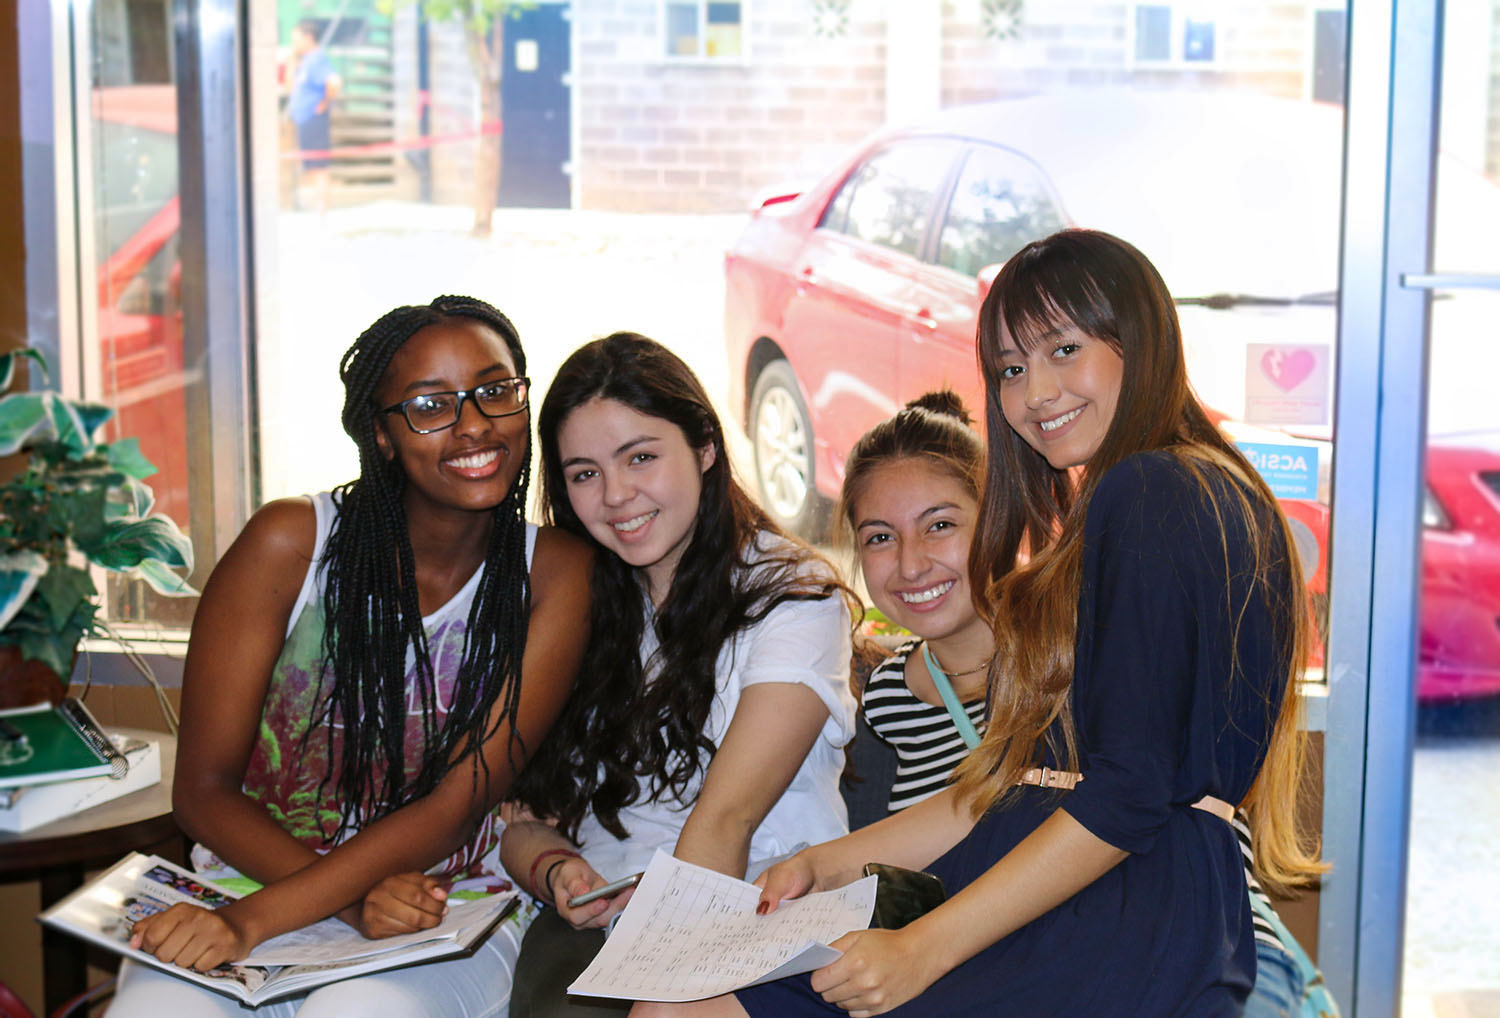 International group of girls sign up for classes at Christian Boarding School